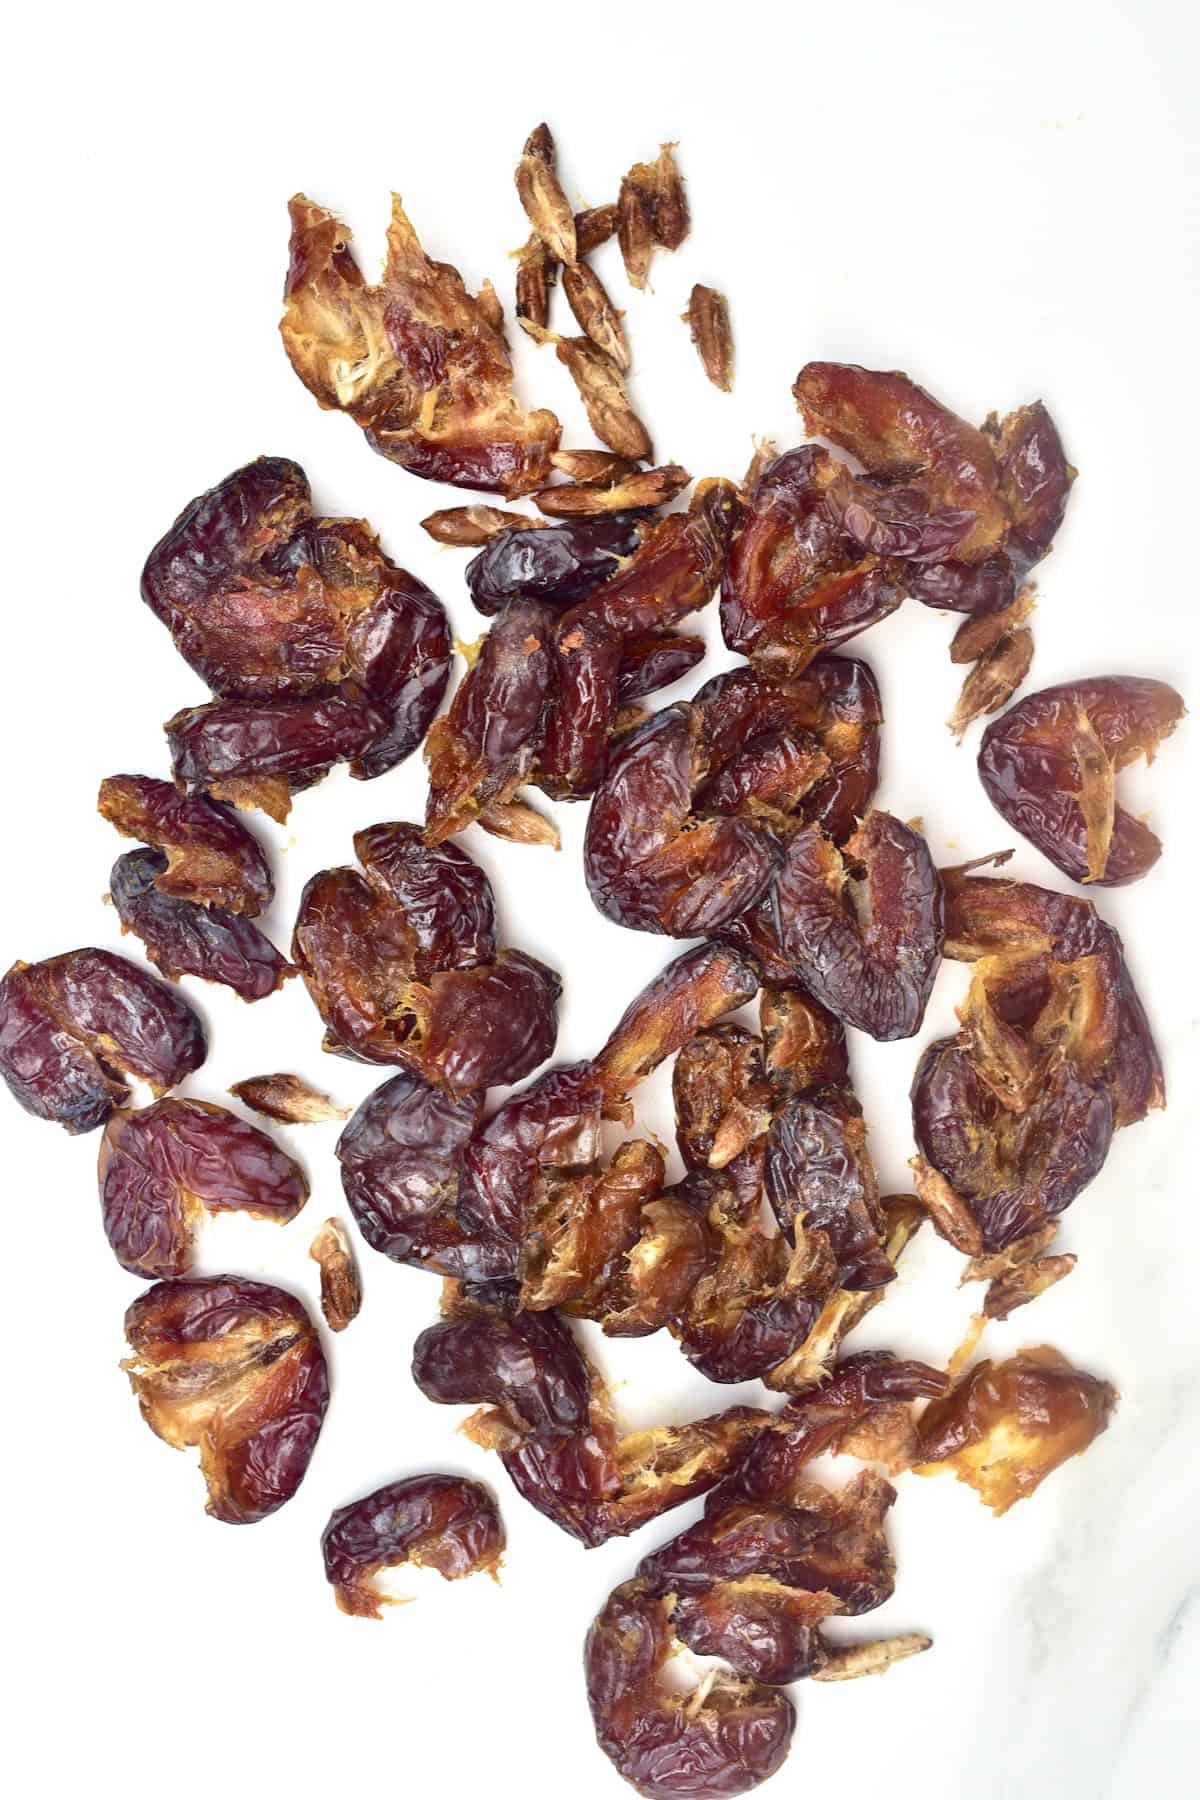 Pitted dates on a flat surface